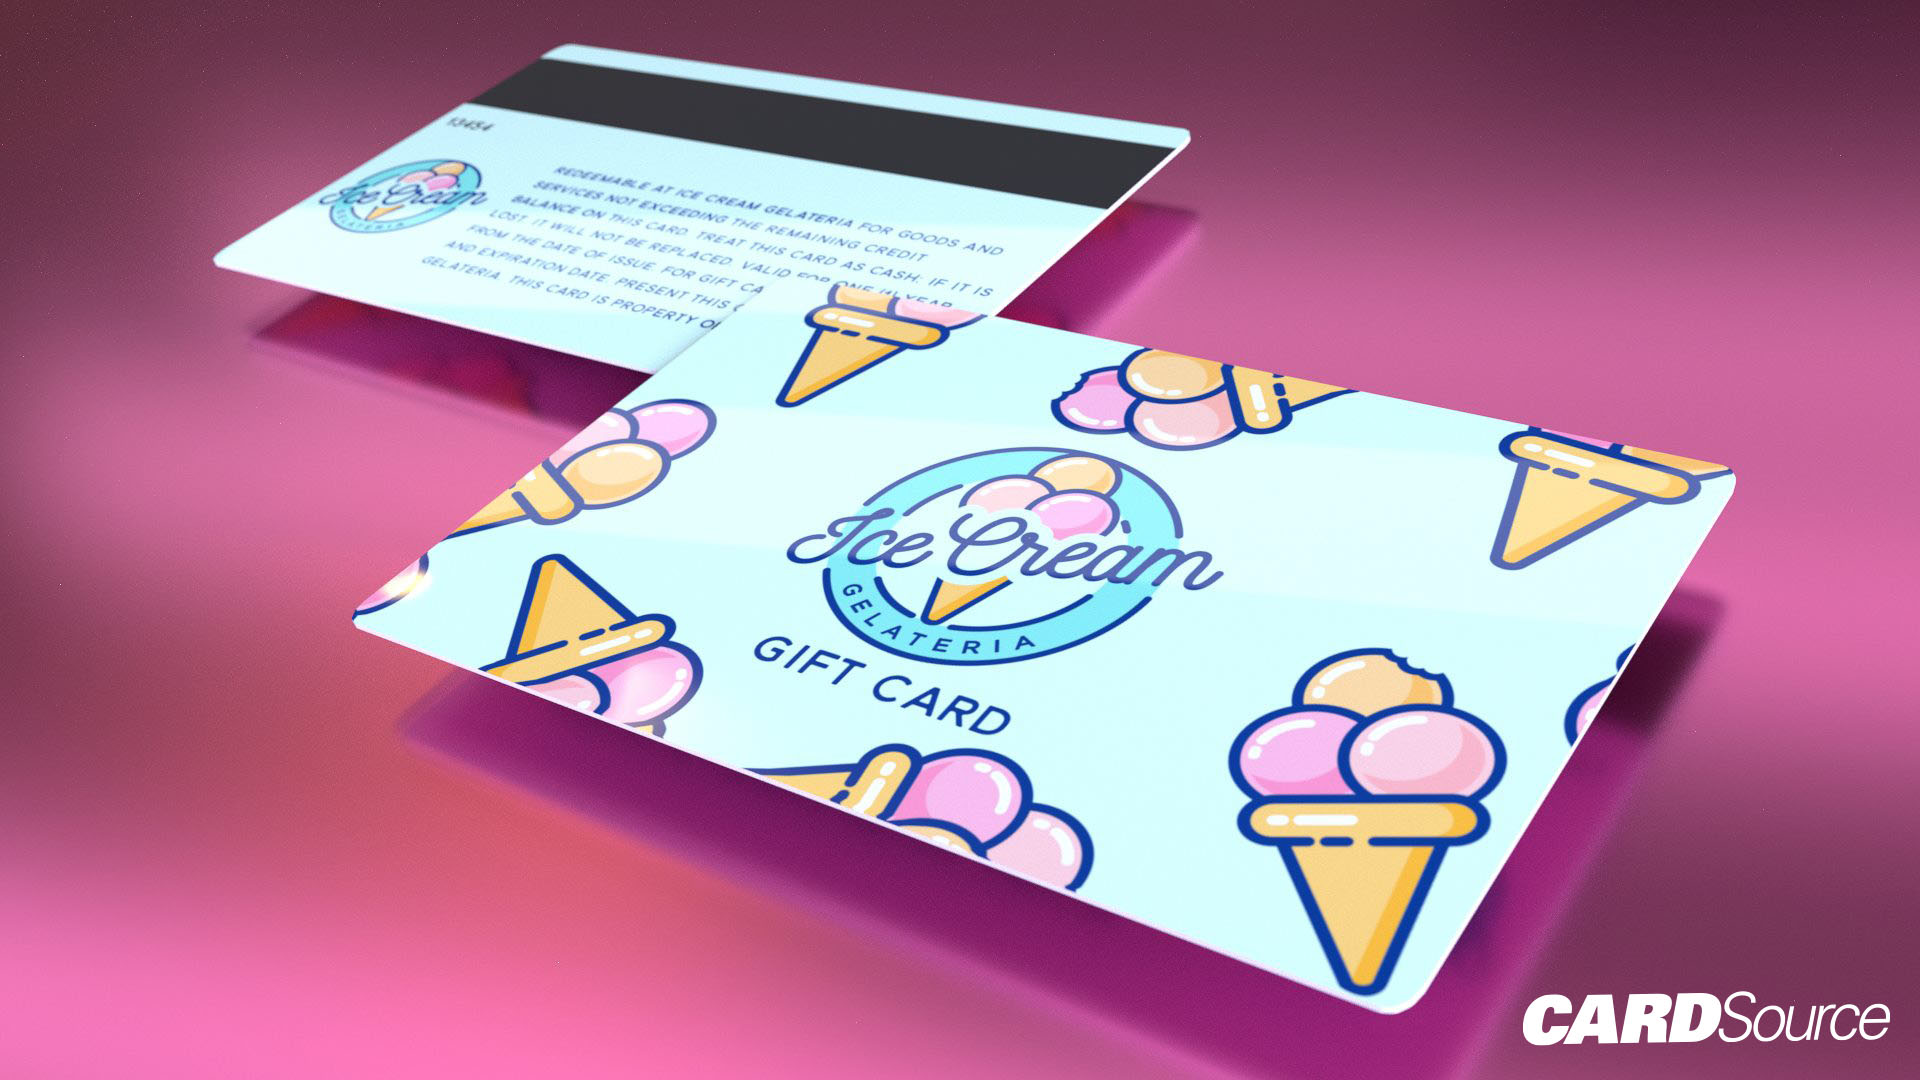 icecream_giftcard_cardsource